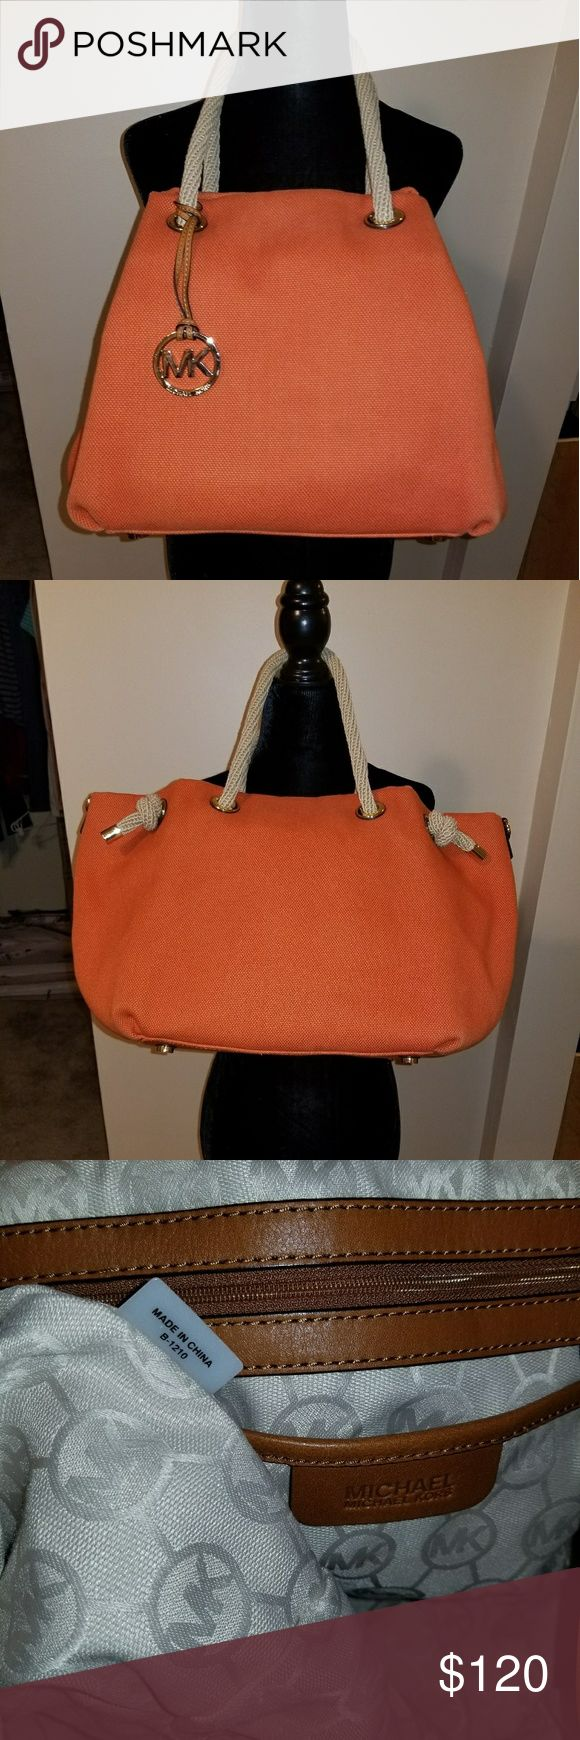 EUC Michael Kors large Fulton canvas tote This is a gorgeous nautical purse in a bright orange canvas with tan rope details and gold accents. It has 4 inside slip pockets and 1 zipper pocket, plus there is a key keeper. Very roomy, and can be used with the sides folded in or left out. Michael Kors Bags Totes